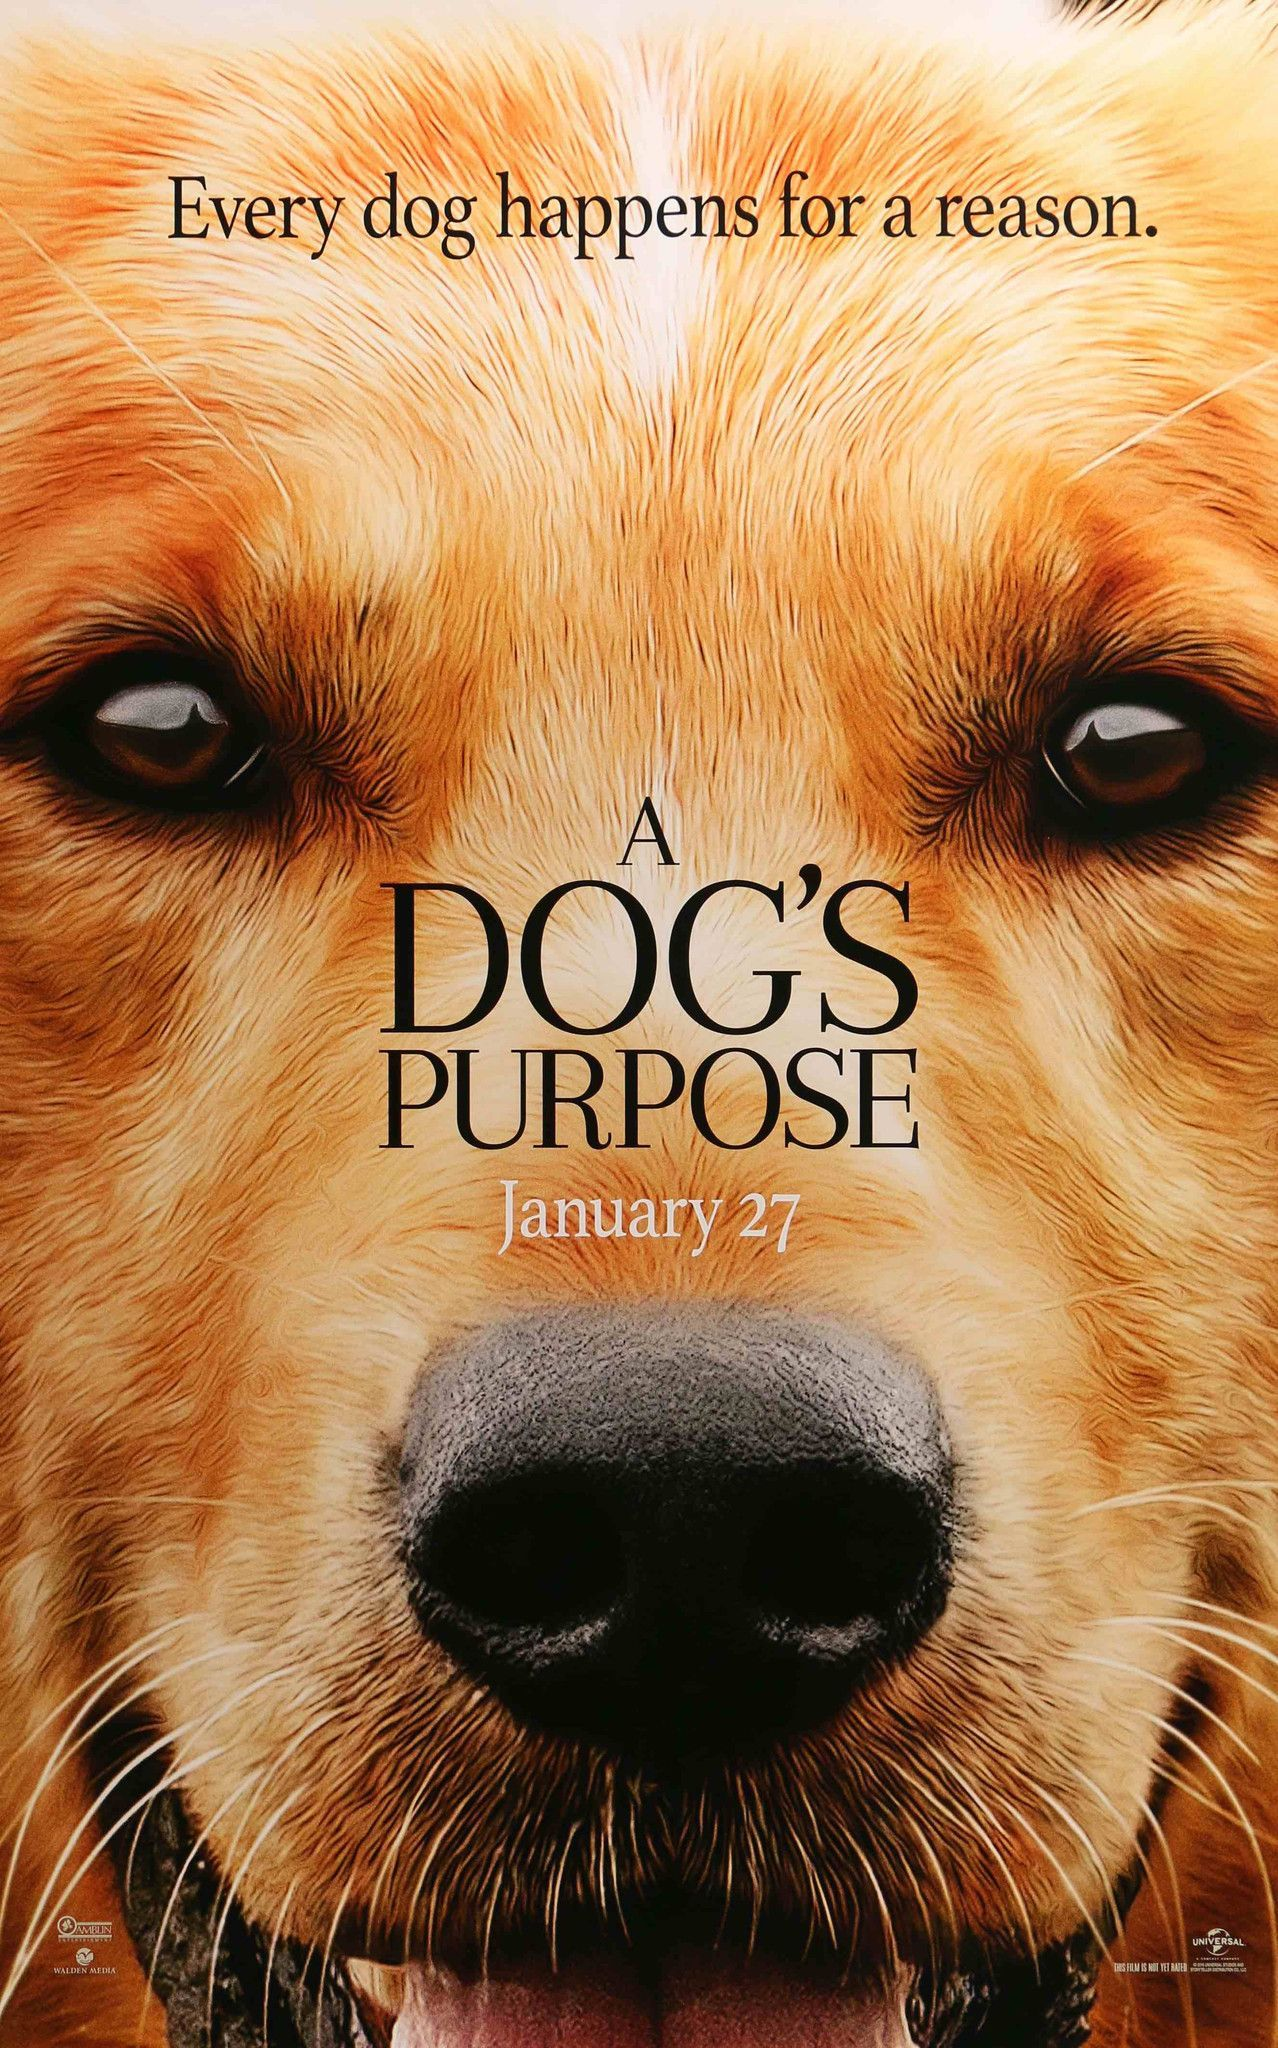 A Dog's Purpose (2017) A dogs purpose movie, A dogs